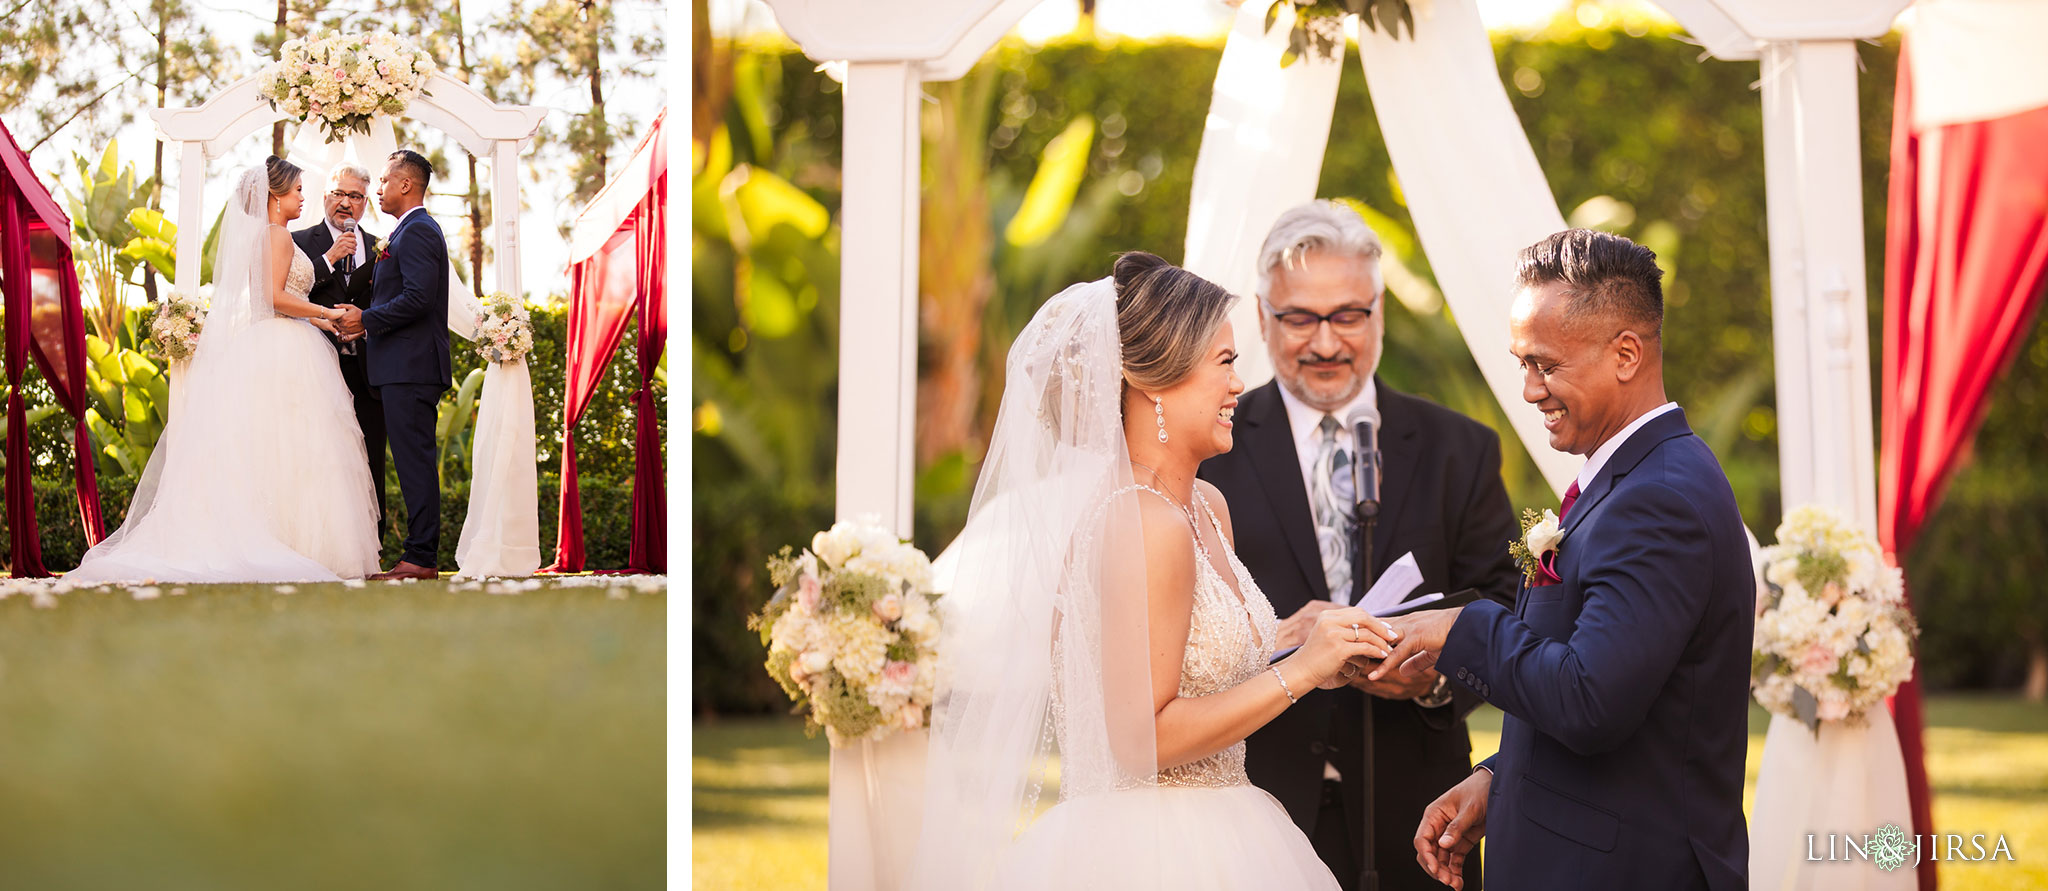 27 Hotel Irvine Orange County Wedding Photography